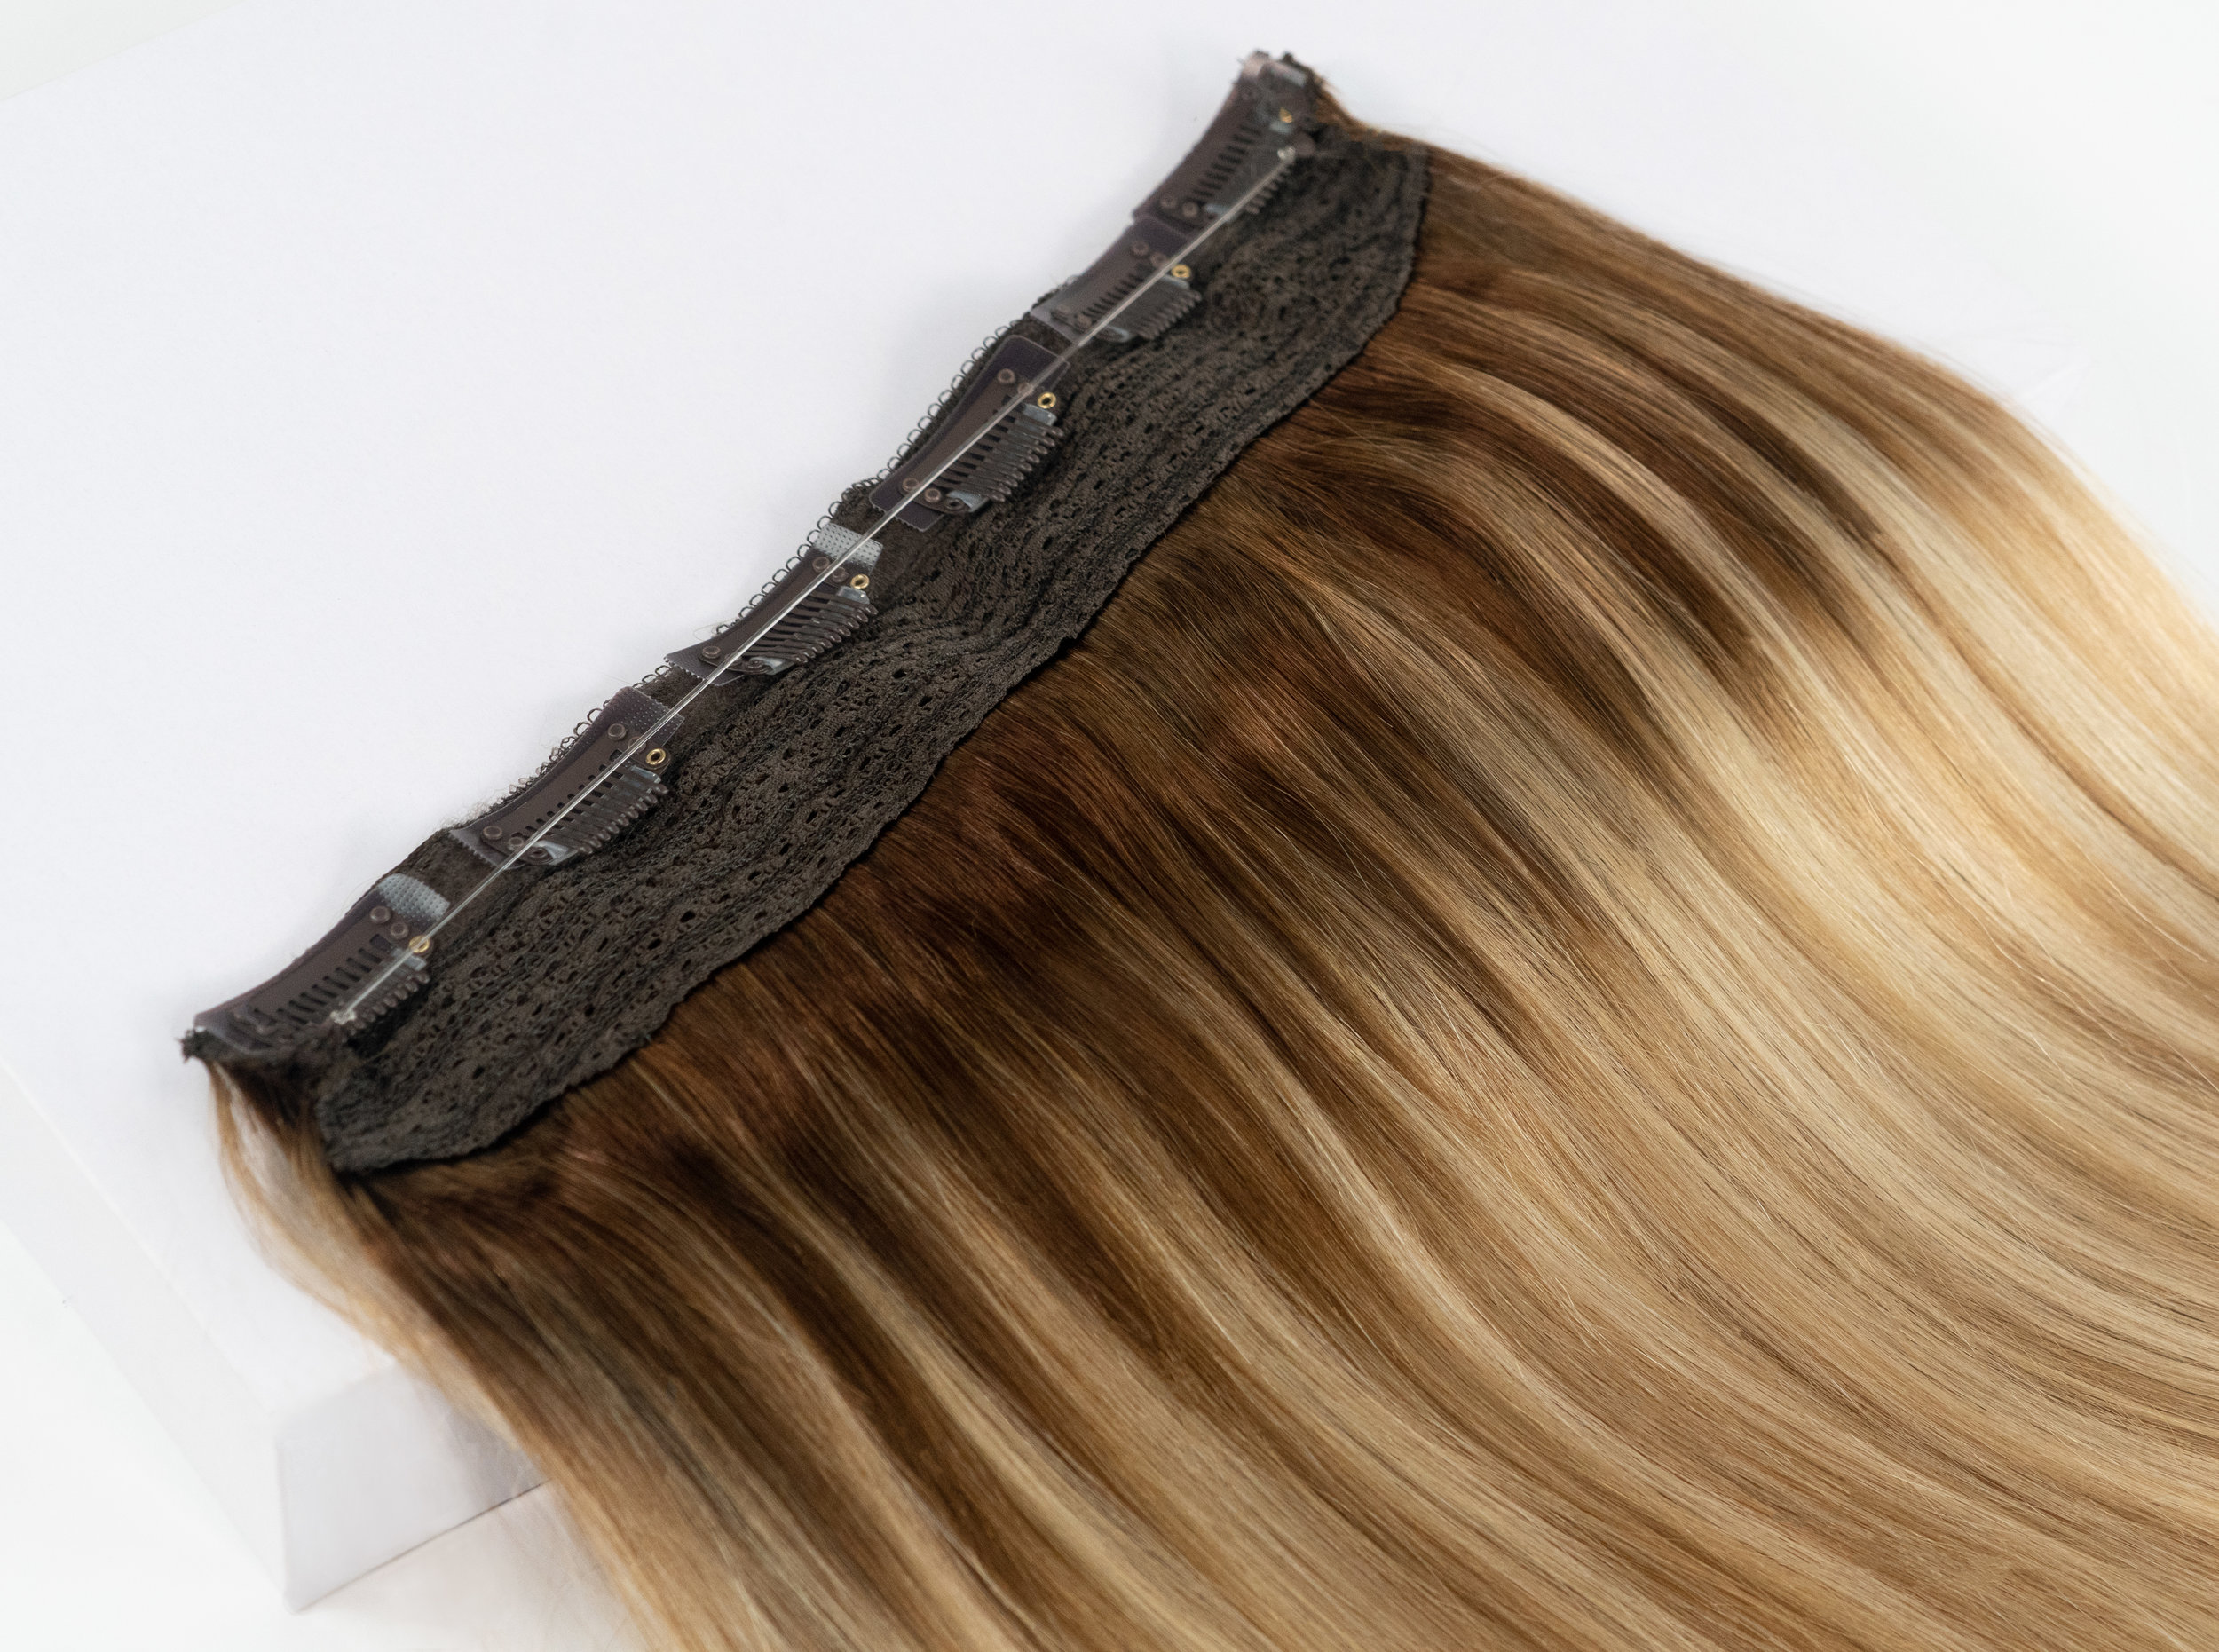 Joi Veil (Halo-Style) - Using a transparent string that will blend seamlessly with the layers of your own hair, this halo-style extension piece is a one-step wonder to length and volume.